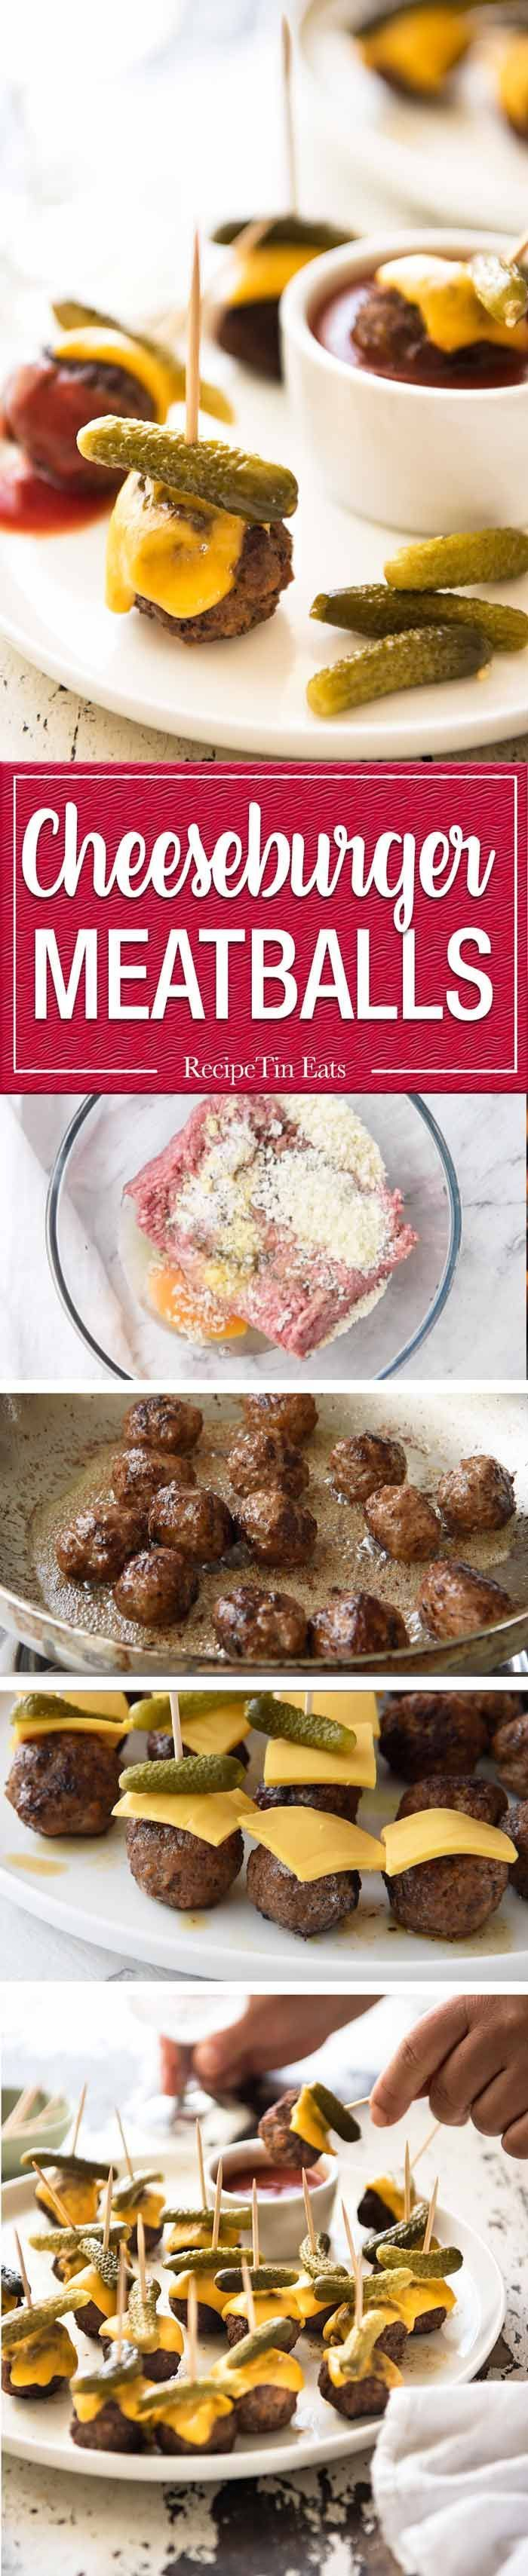 Cheeseburger Party Meatballs - tastes like a cheeseburger, in bite size form! Great for making ahead - fully assemble (inc toothpicks), 90 sec reheat in microwave. http://www.recipetineats.com